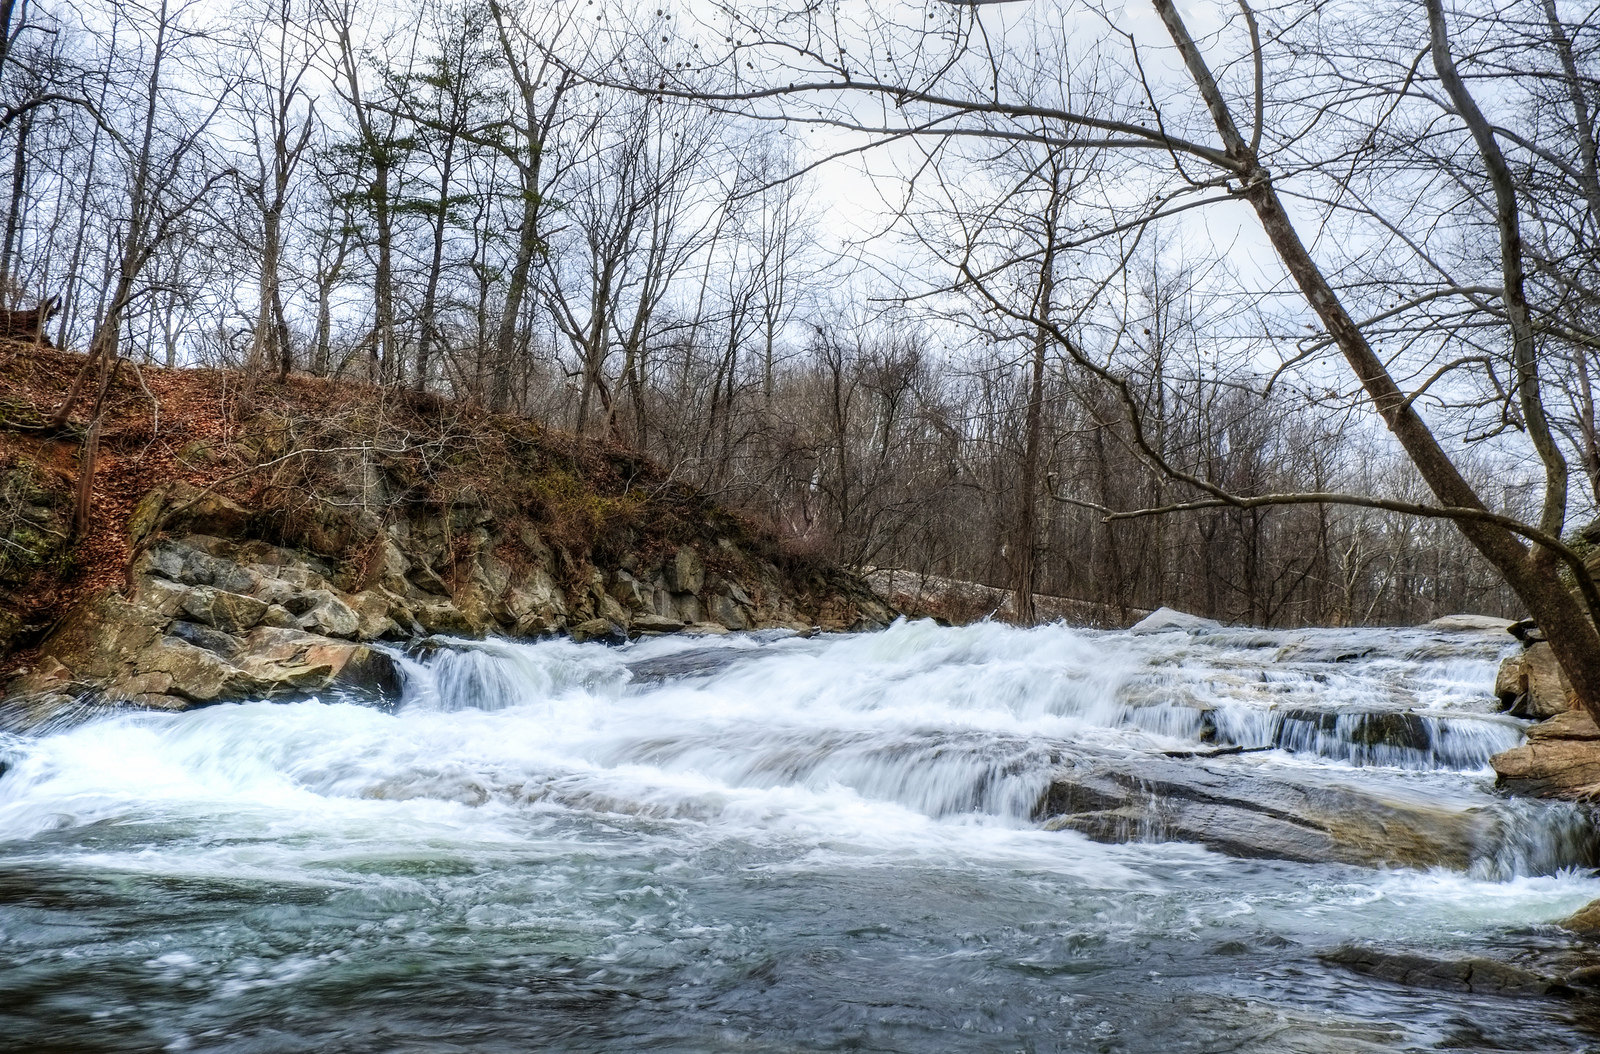 The rapids from the lower branch of the Patapsco River comes barreling over some rocks by the train tracks near the start of the hike.  Photo by Daniel Hart.